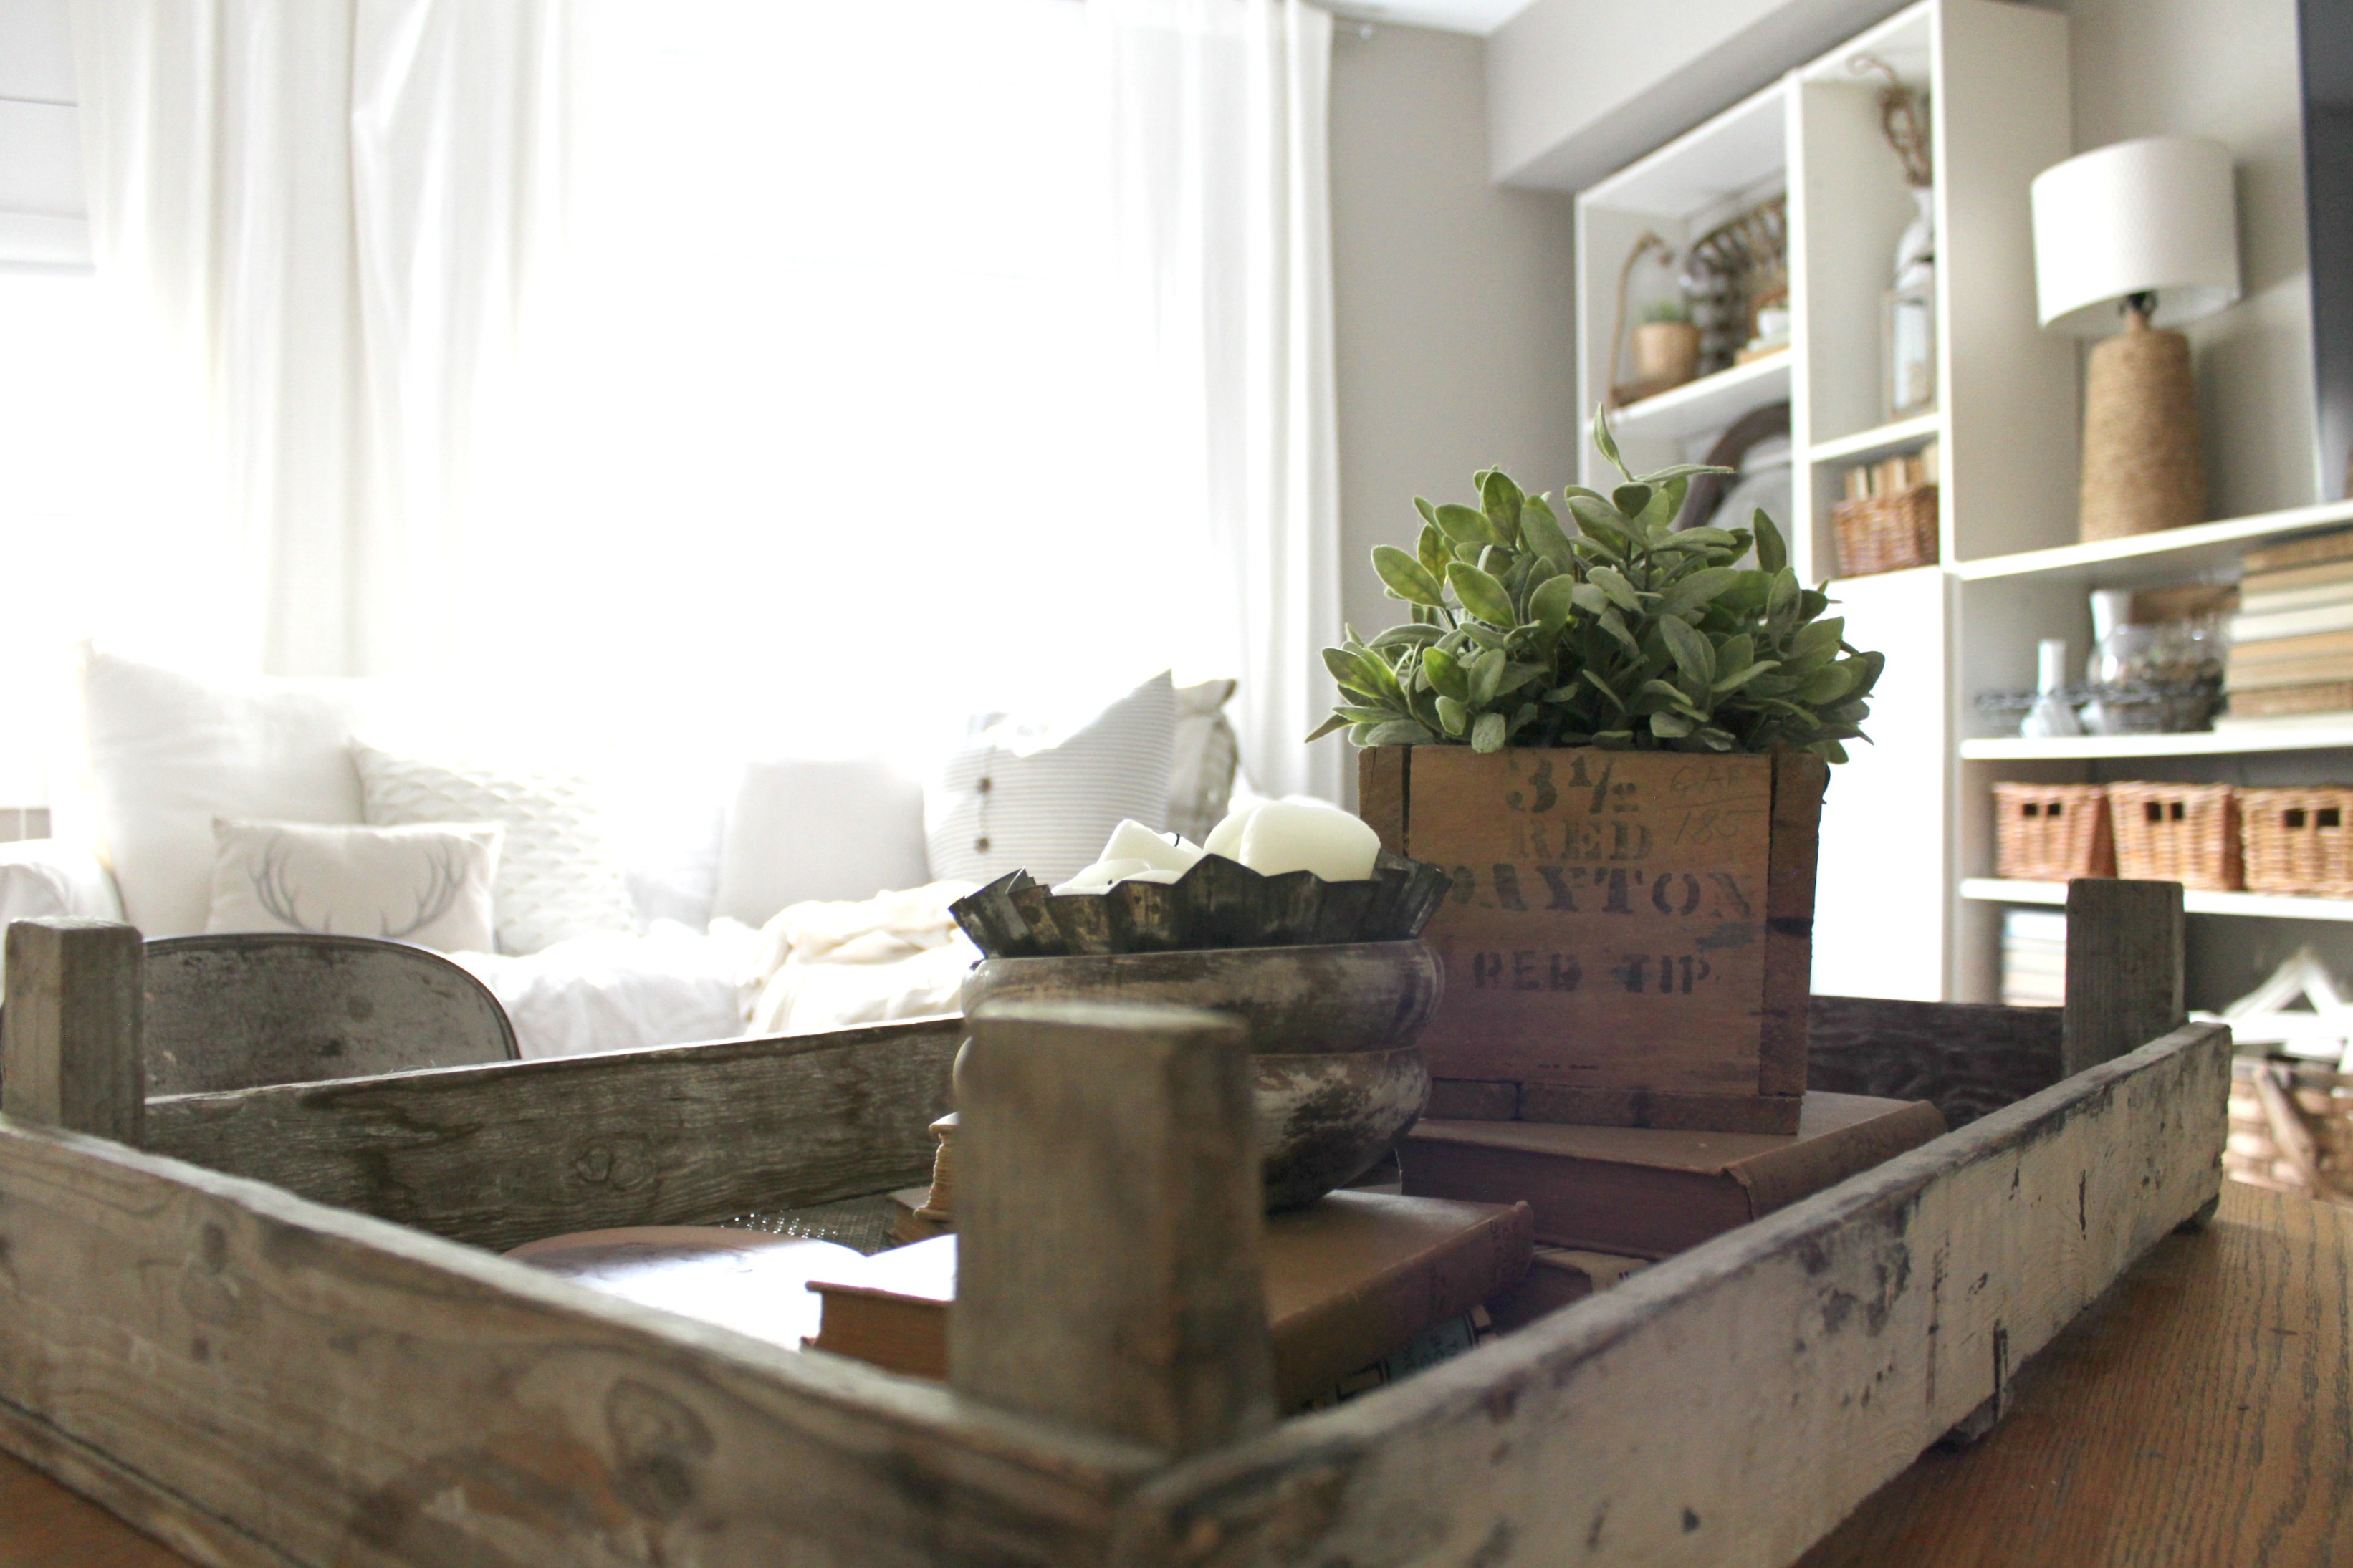 ikea-curtains-bookcases-plants